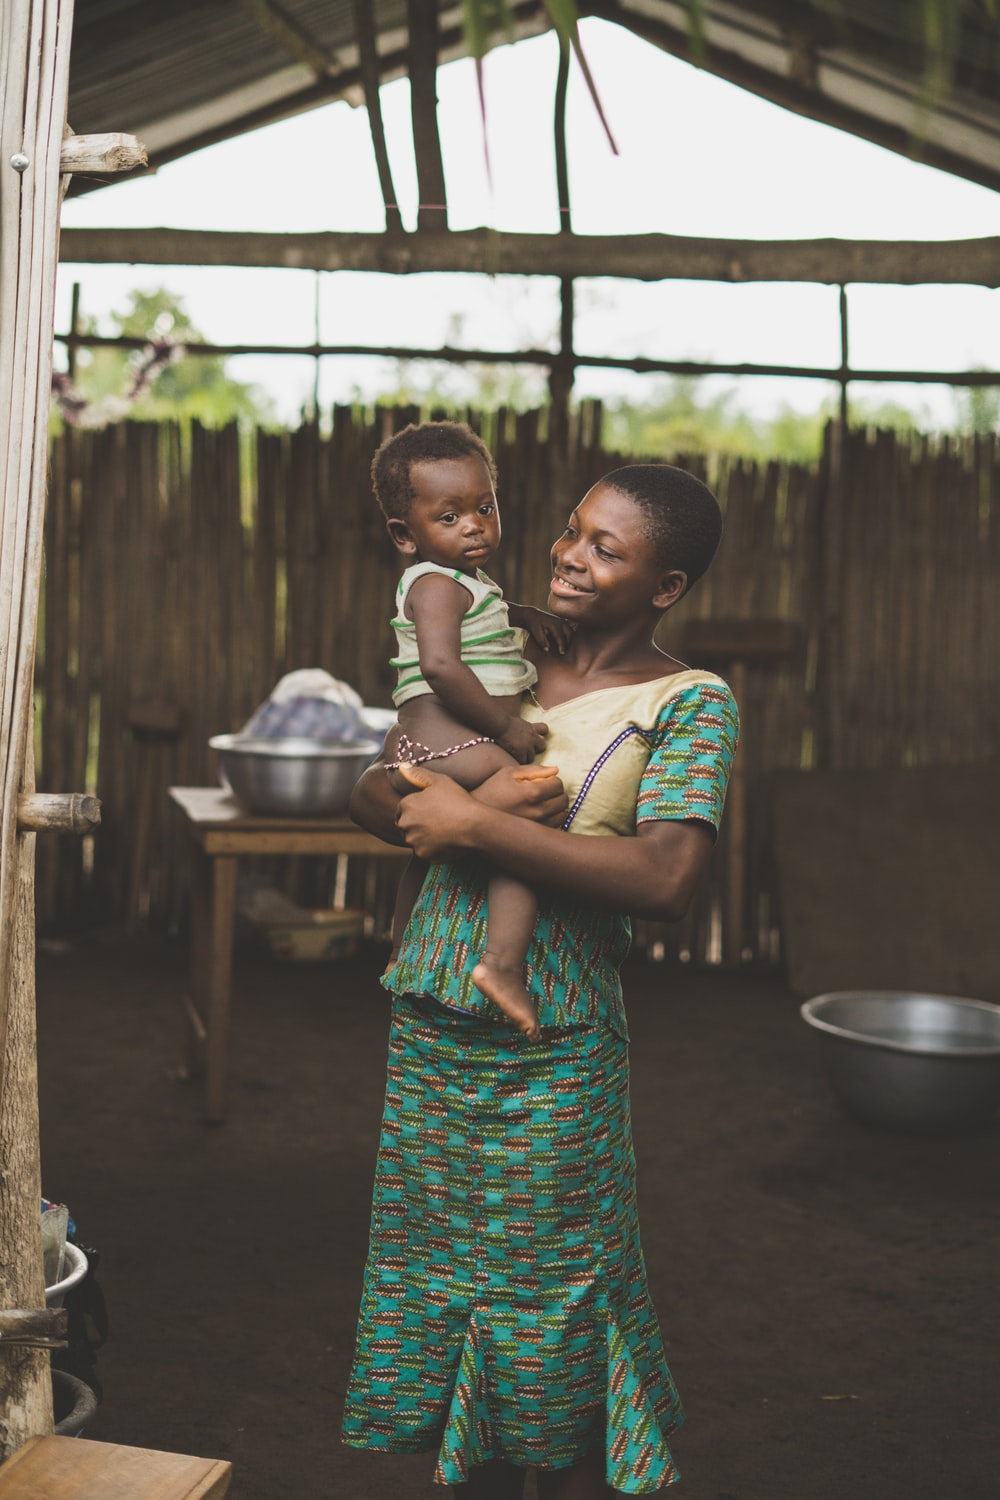 smiling woman standing while holding baby